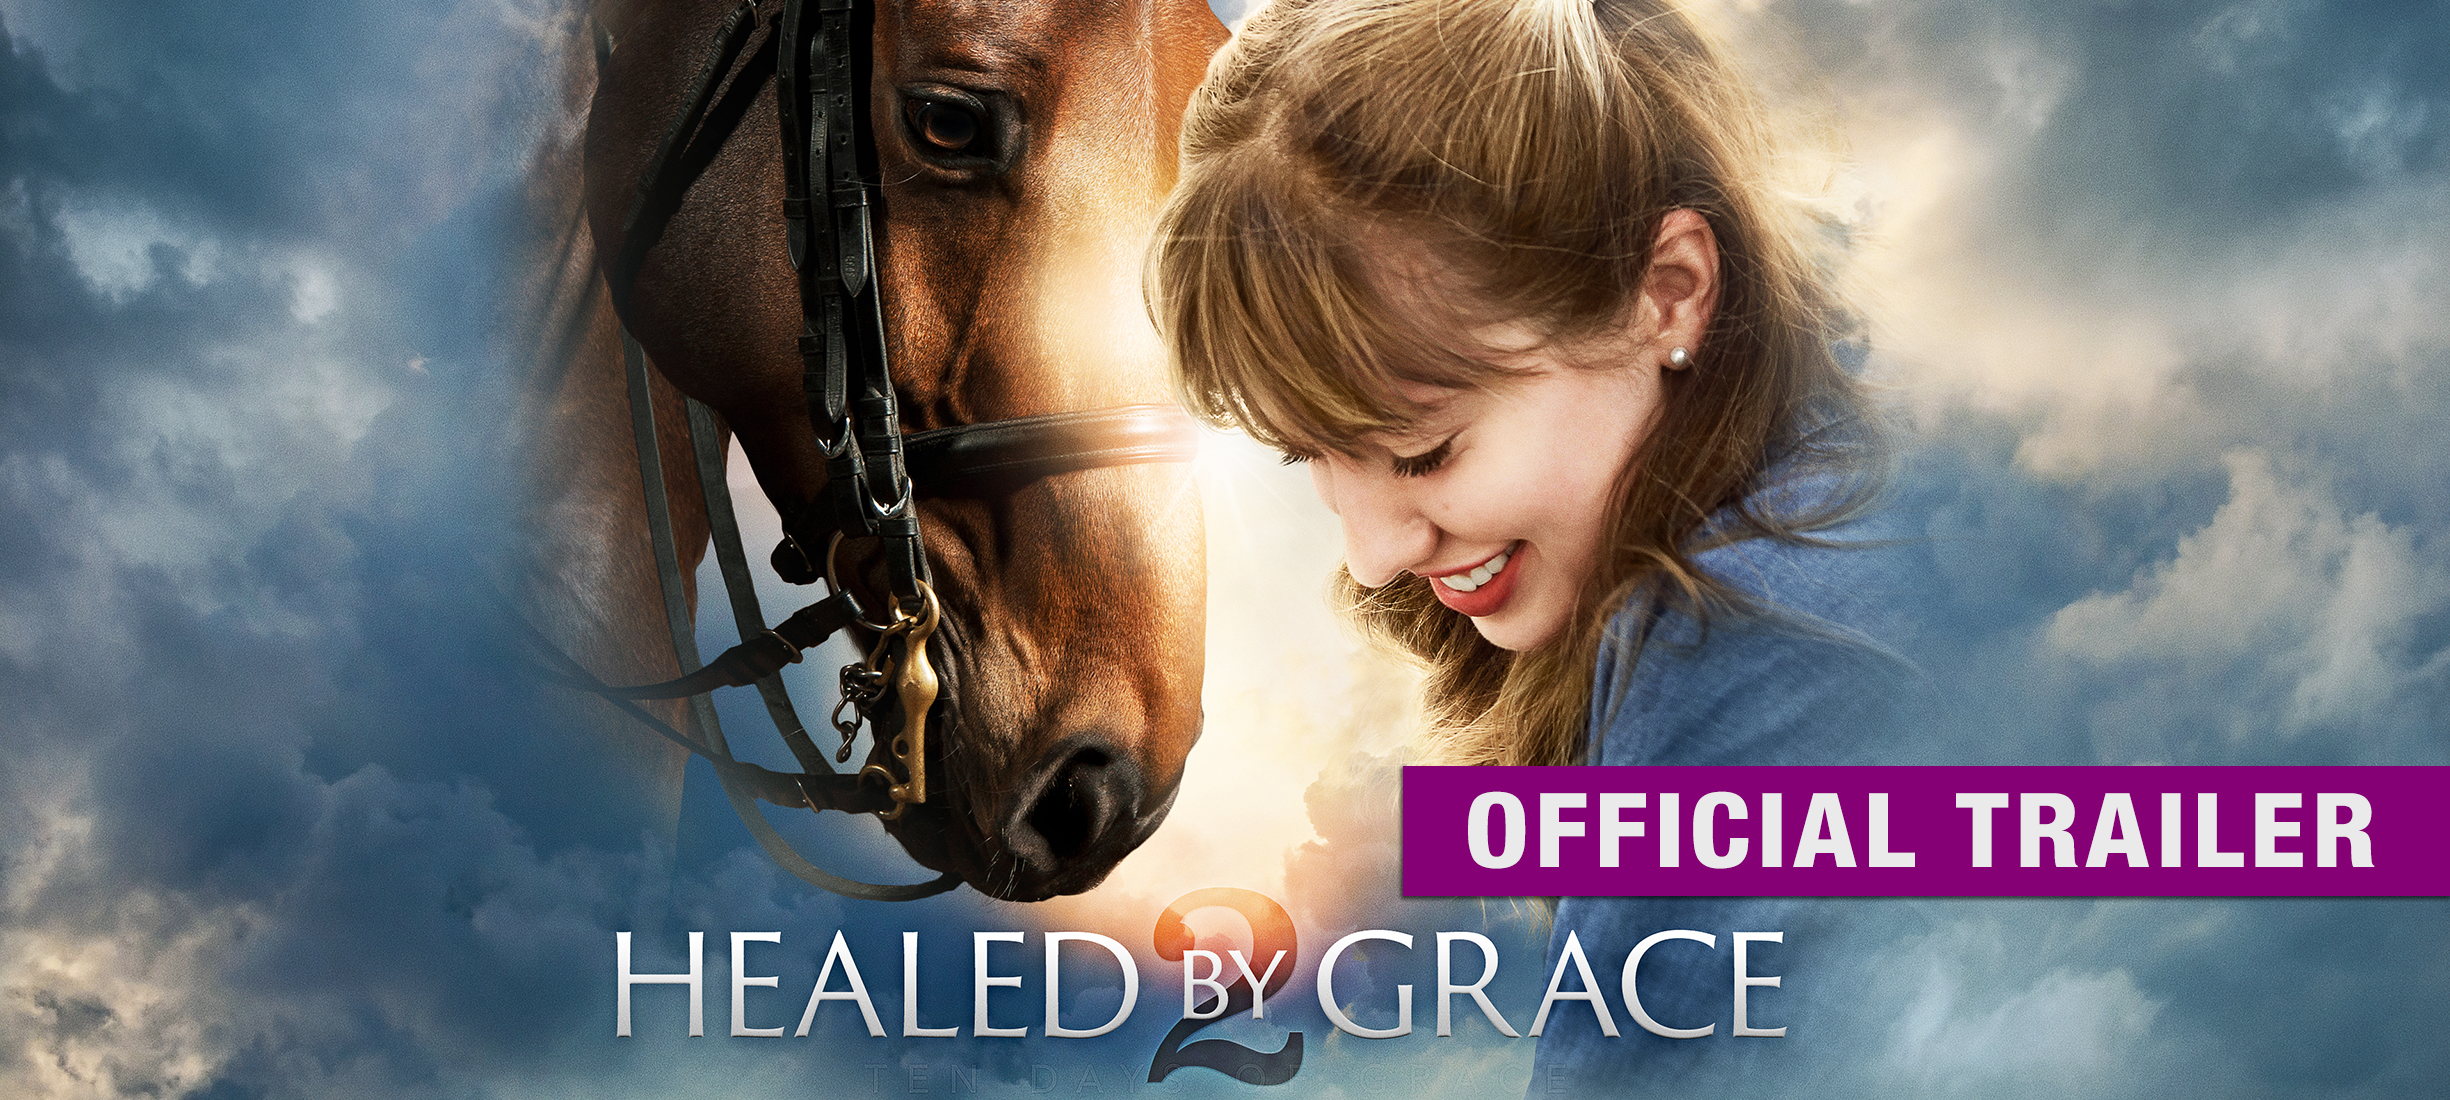 Healed by Grace 2: Trailer